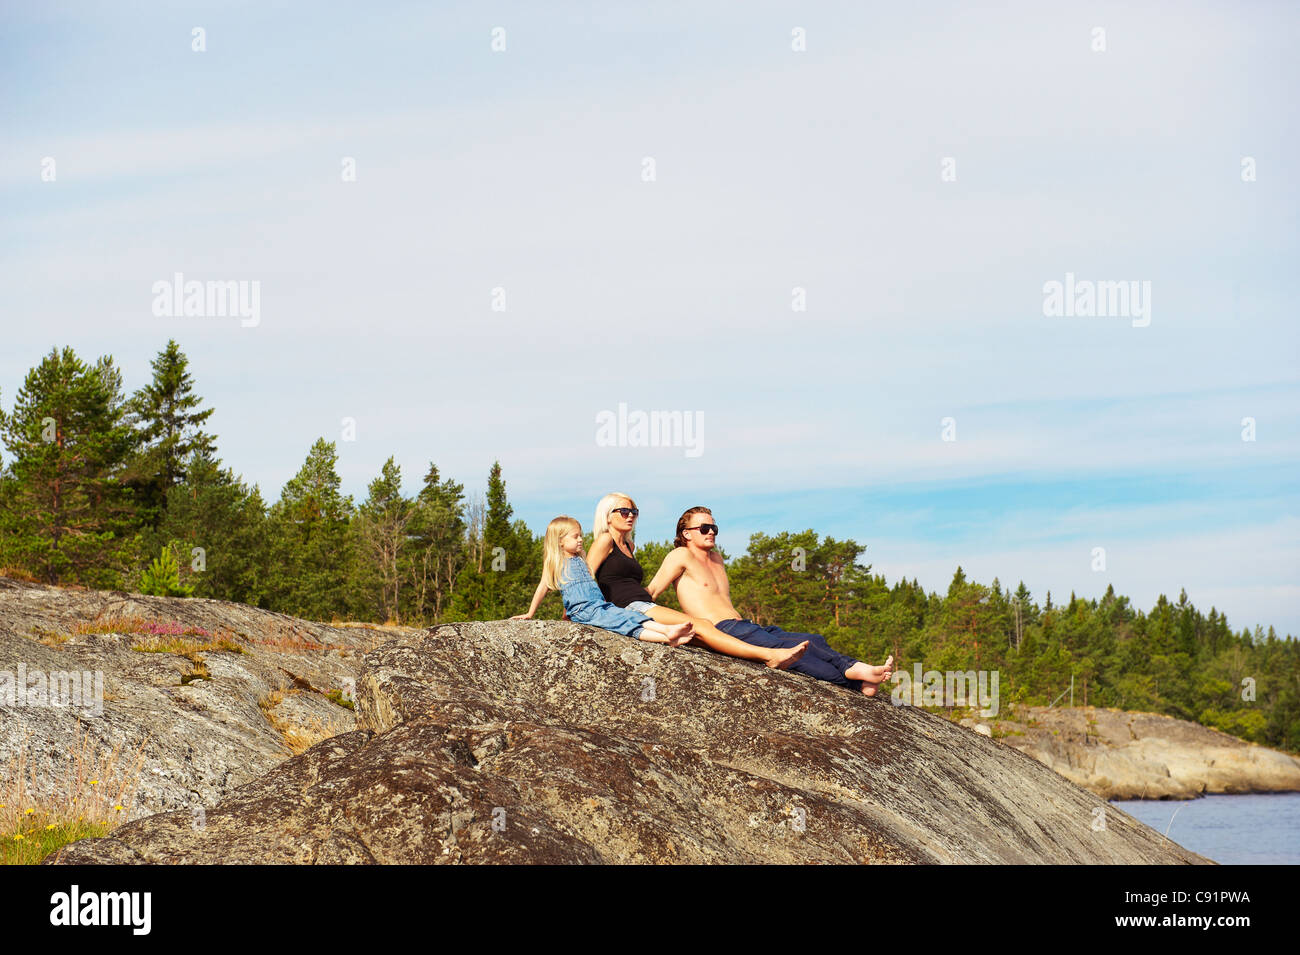 Family sitting on rock by lake - Stock Image